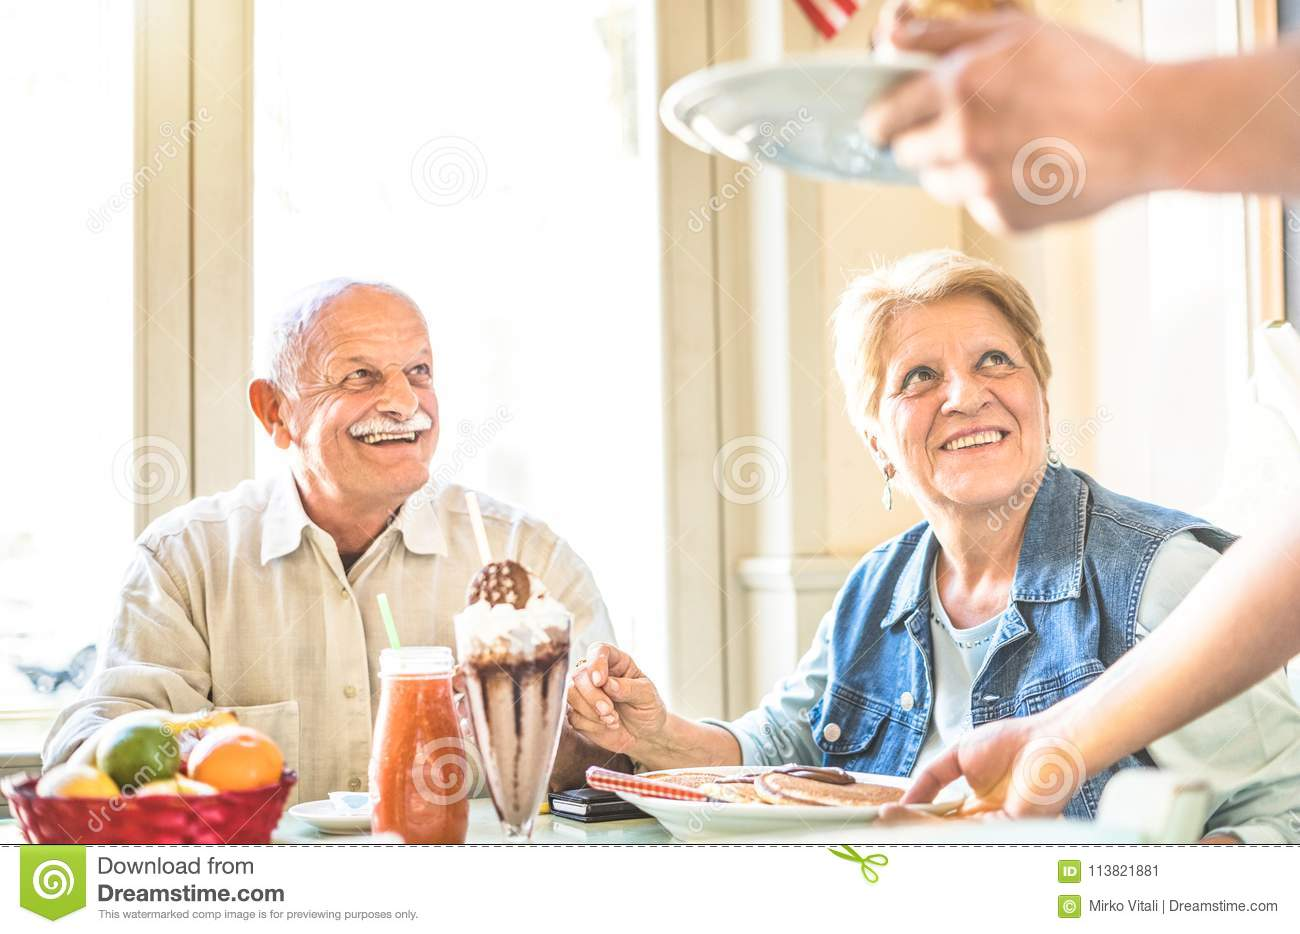 Waiter serving senior retired couple eating cakes at fashion bar